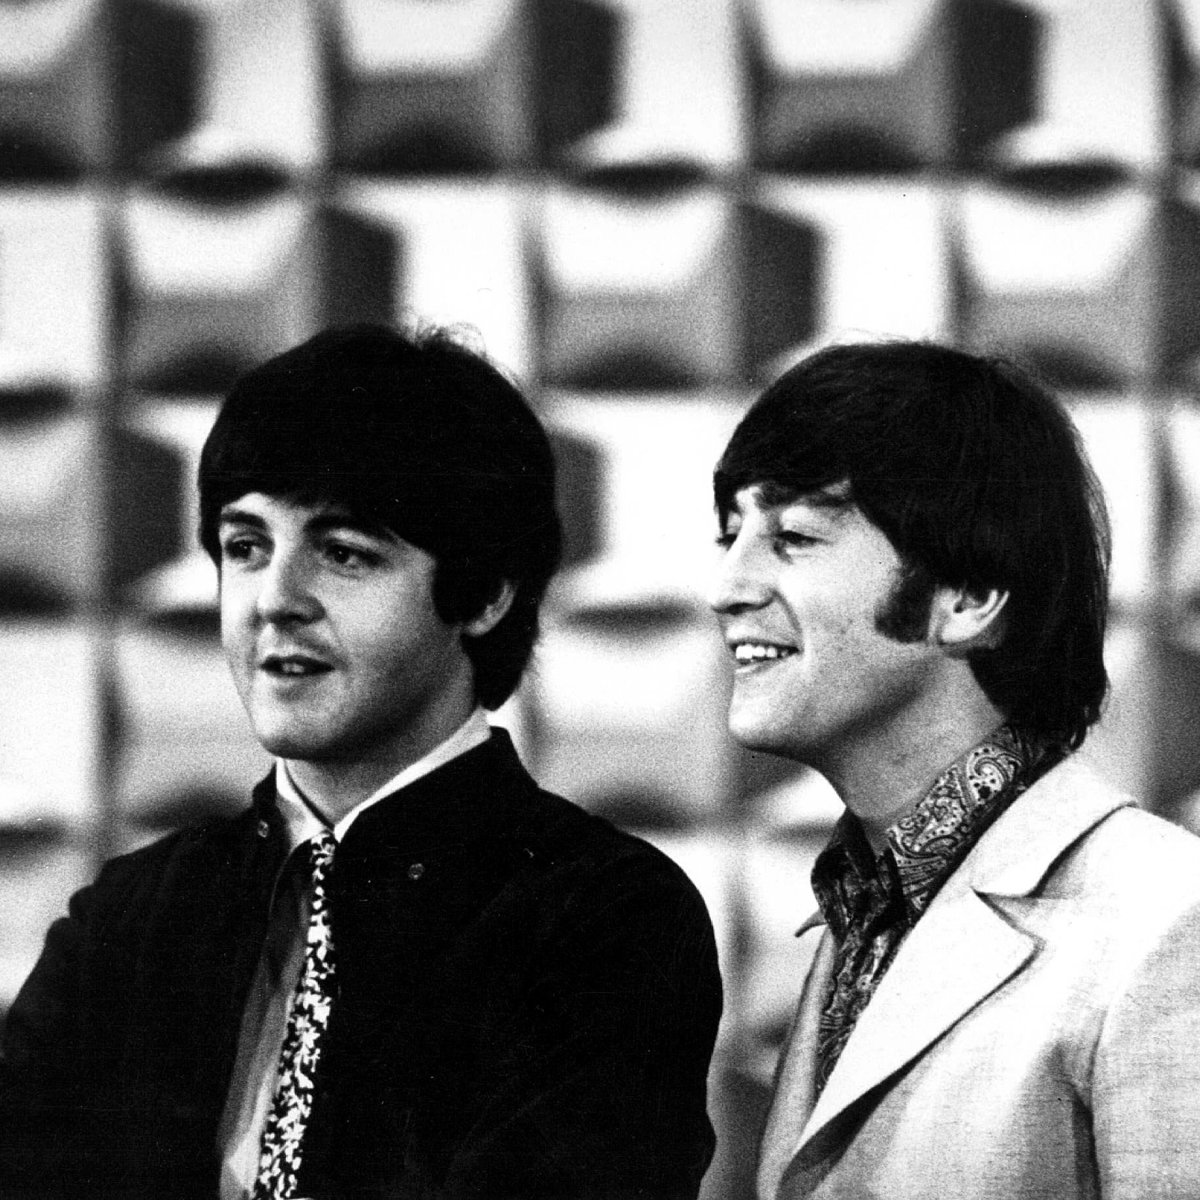 Remembering John Lennon And The Birth Of The Beatles